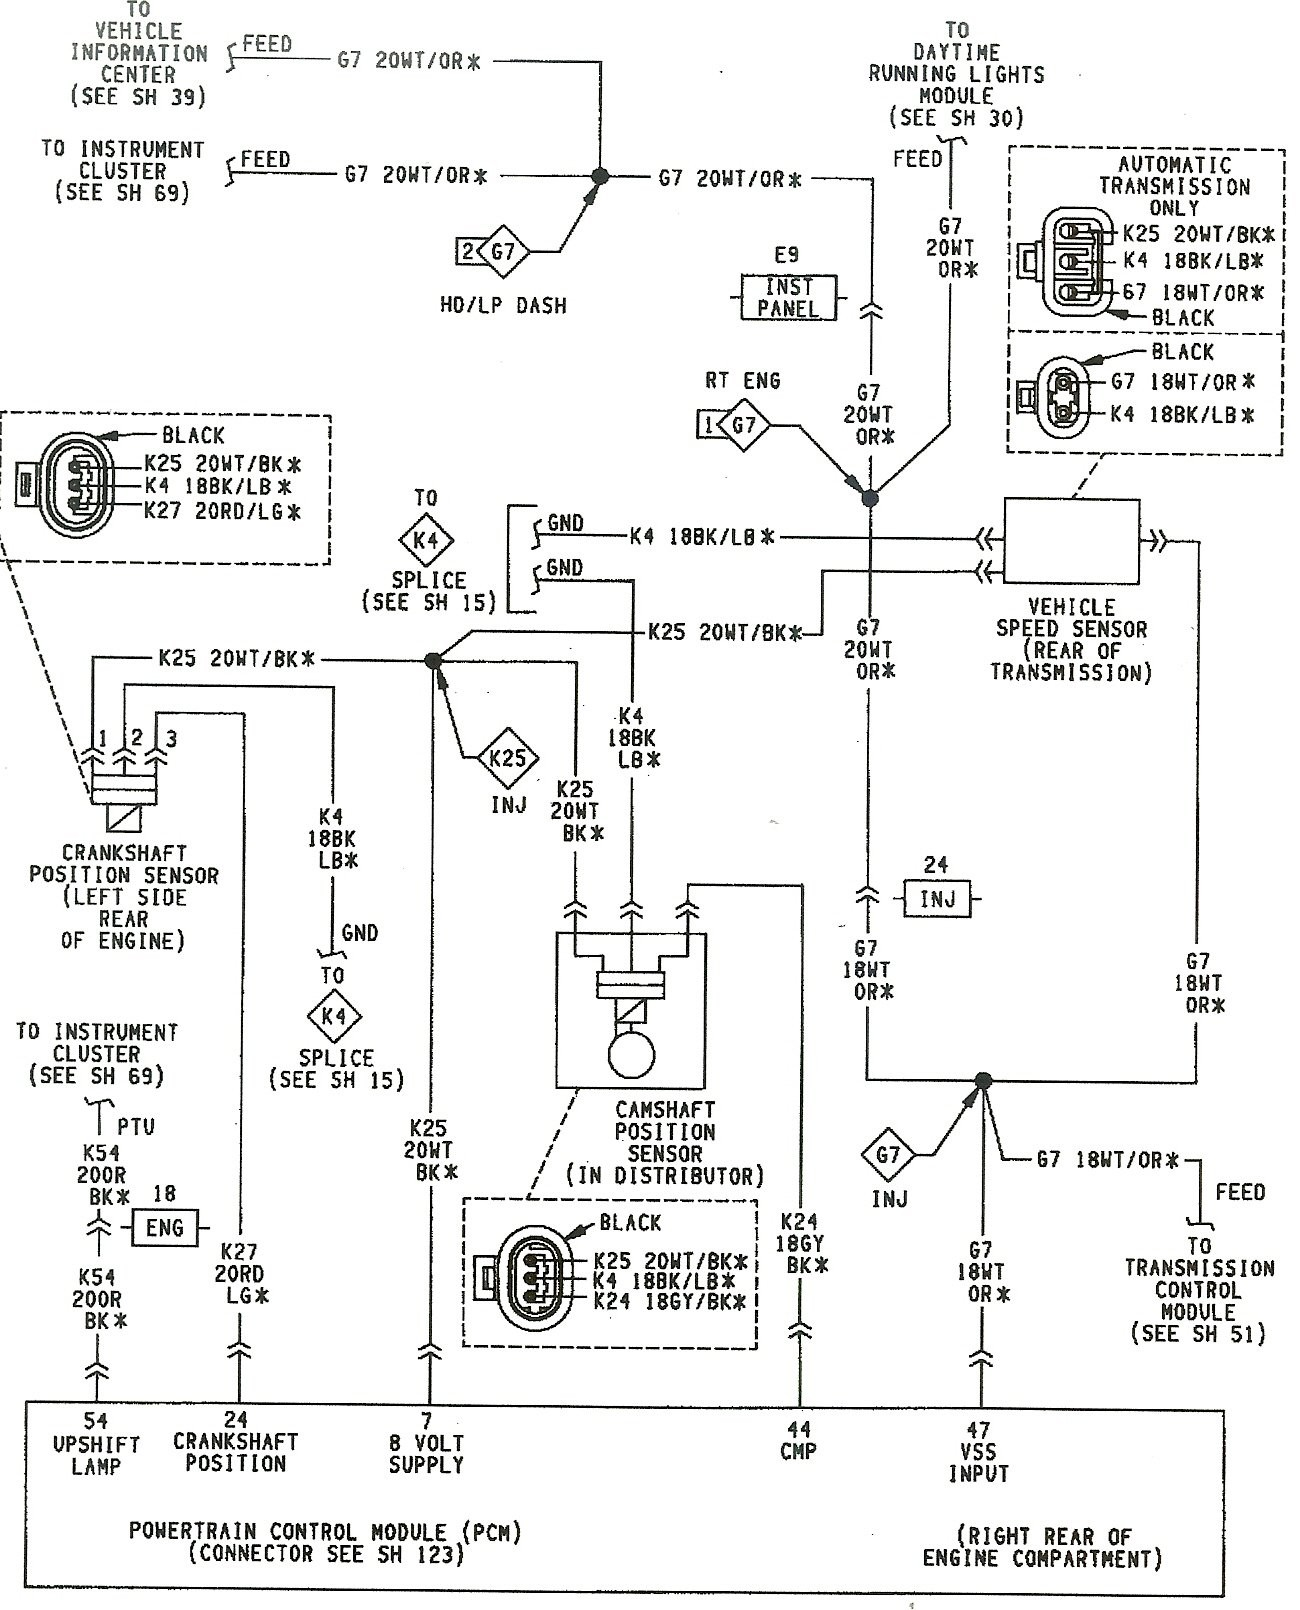 2006 Jeep Grand Cherokee Engine Diagram is there A Fuse